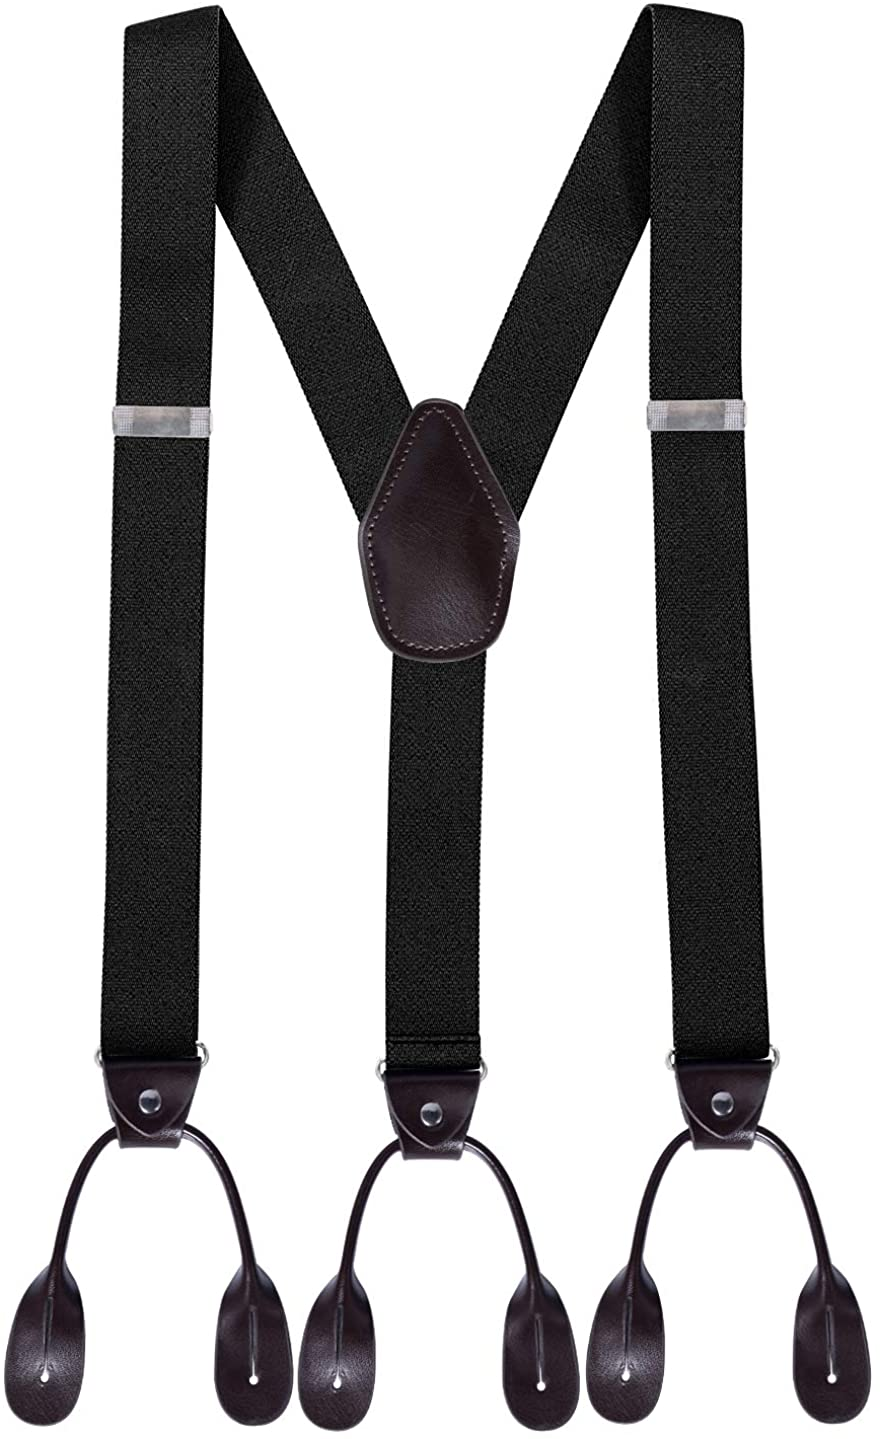 Loritta Mens Y Back Suspenders Leather Trimmed Elastic Button End Tuxedo Suspenders